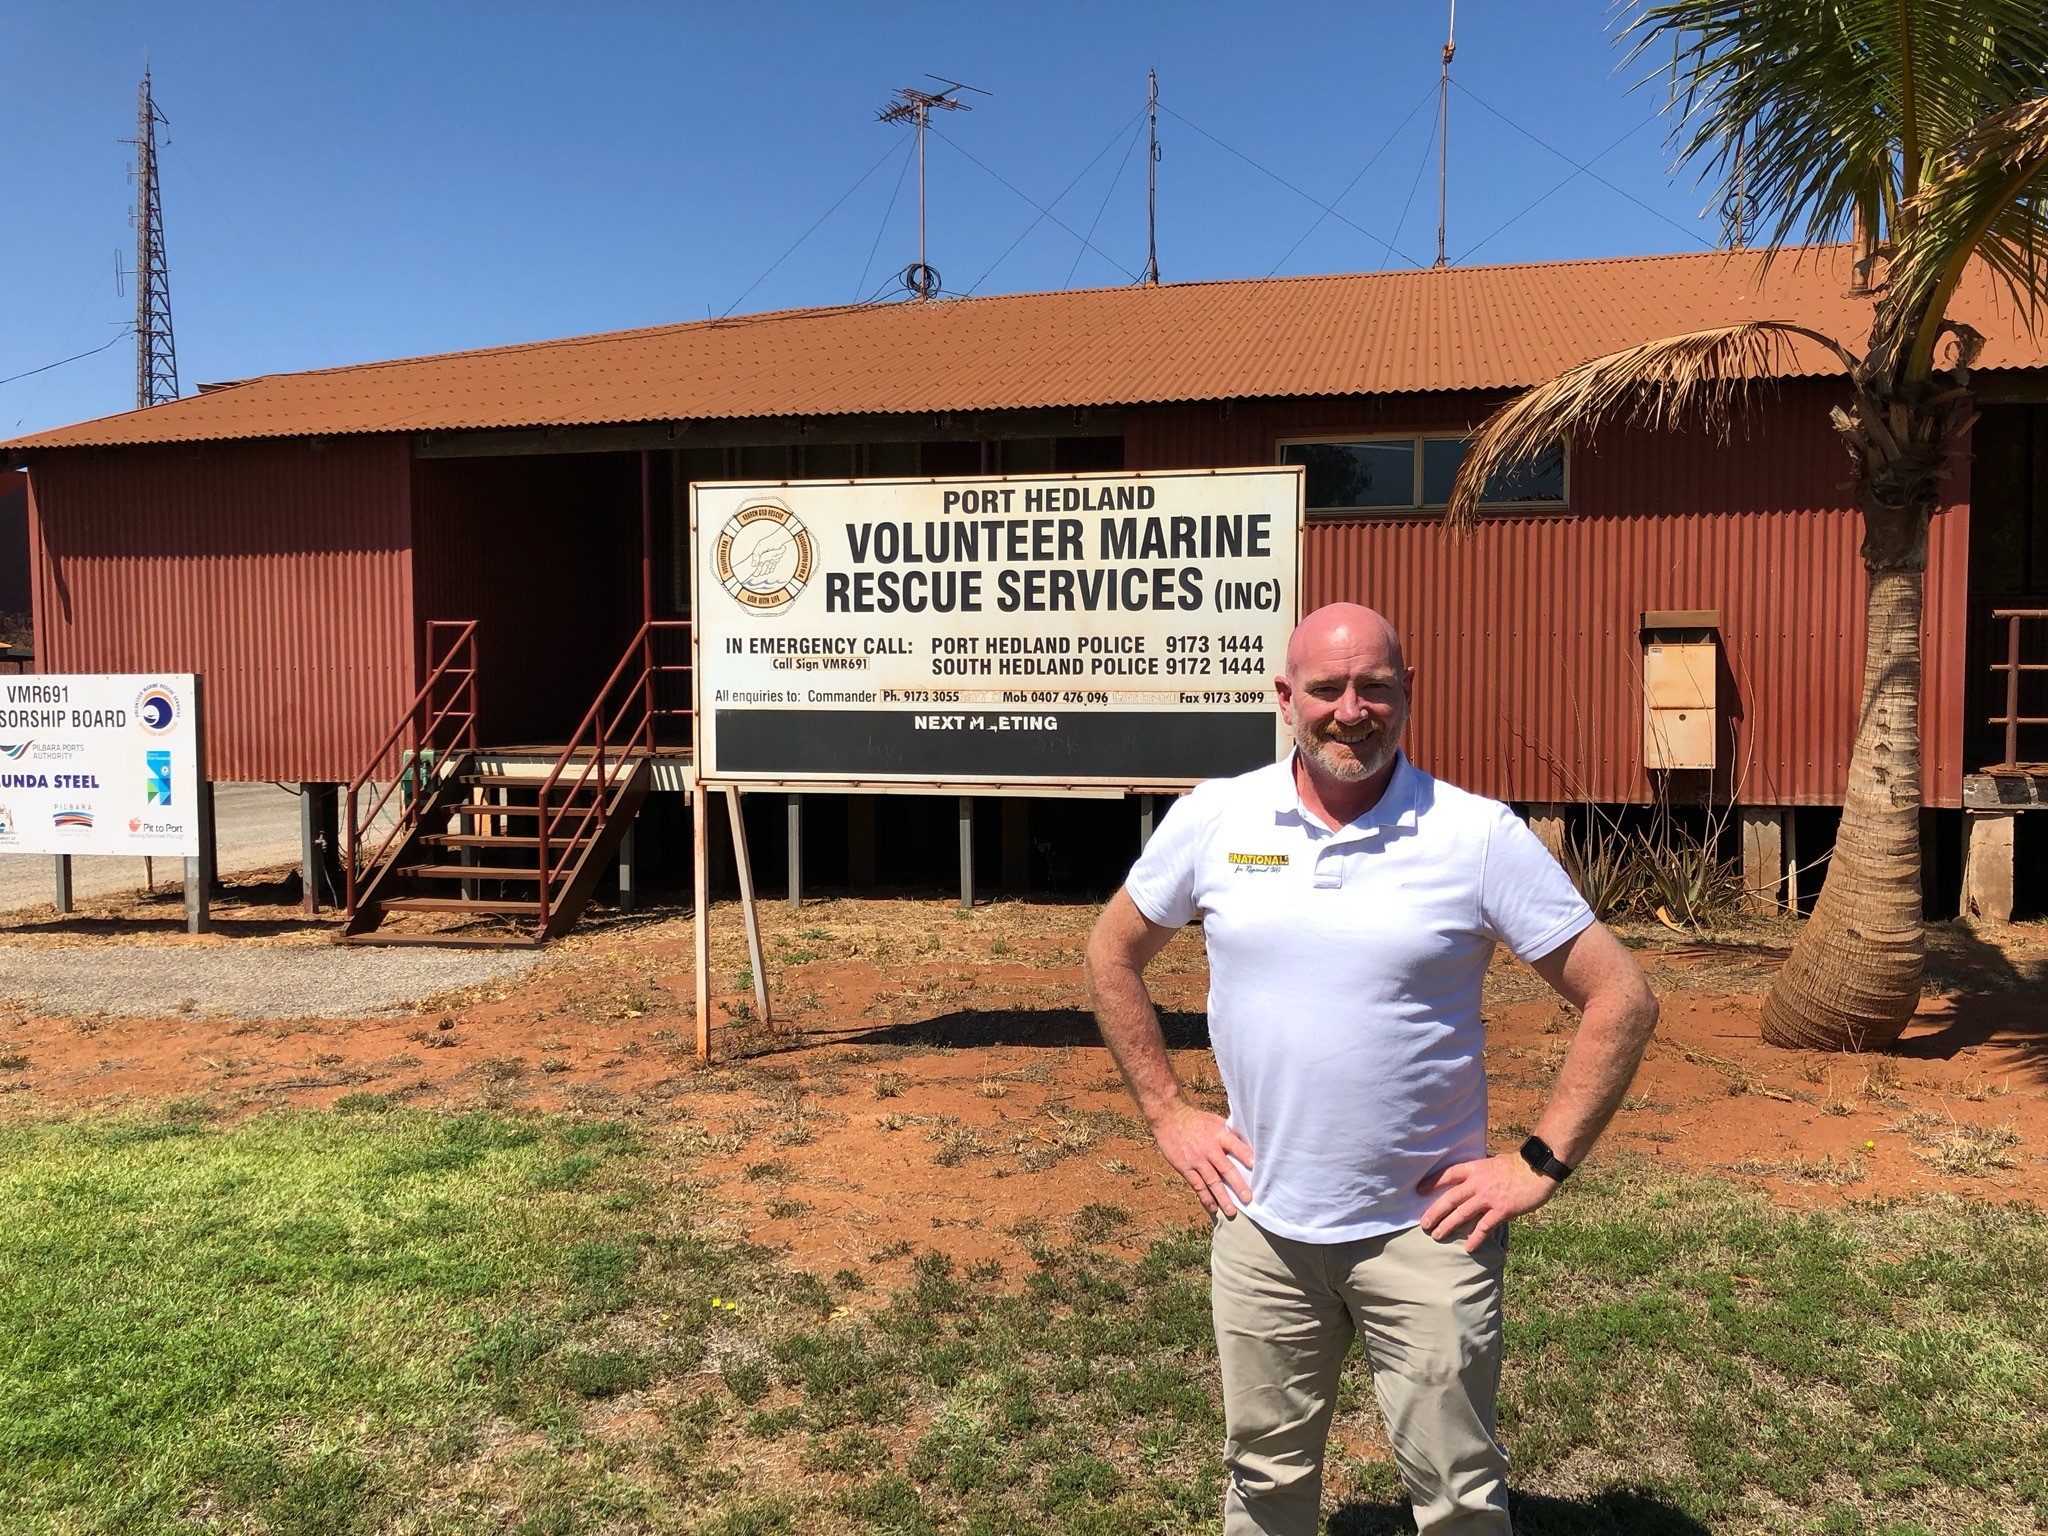 Colin de Grussa MLC was barred from meeting with the Port Hedland Volunteer Marine Rescue Service while visiting the Pilbara this week.